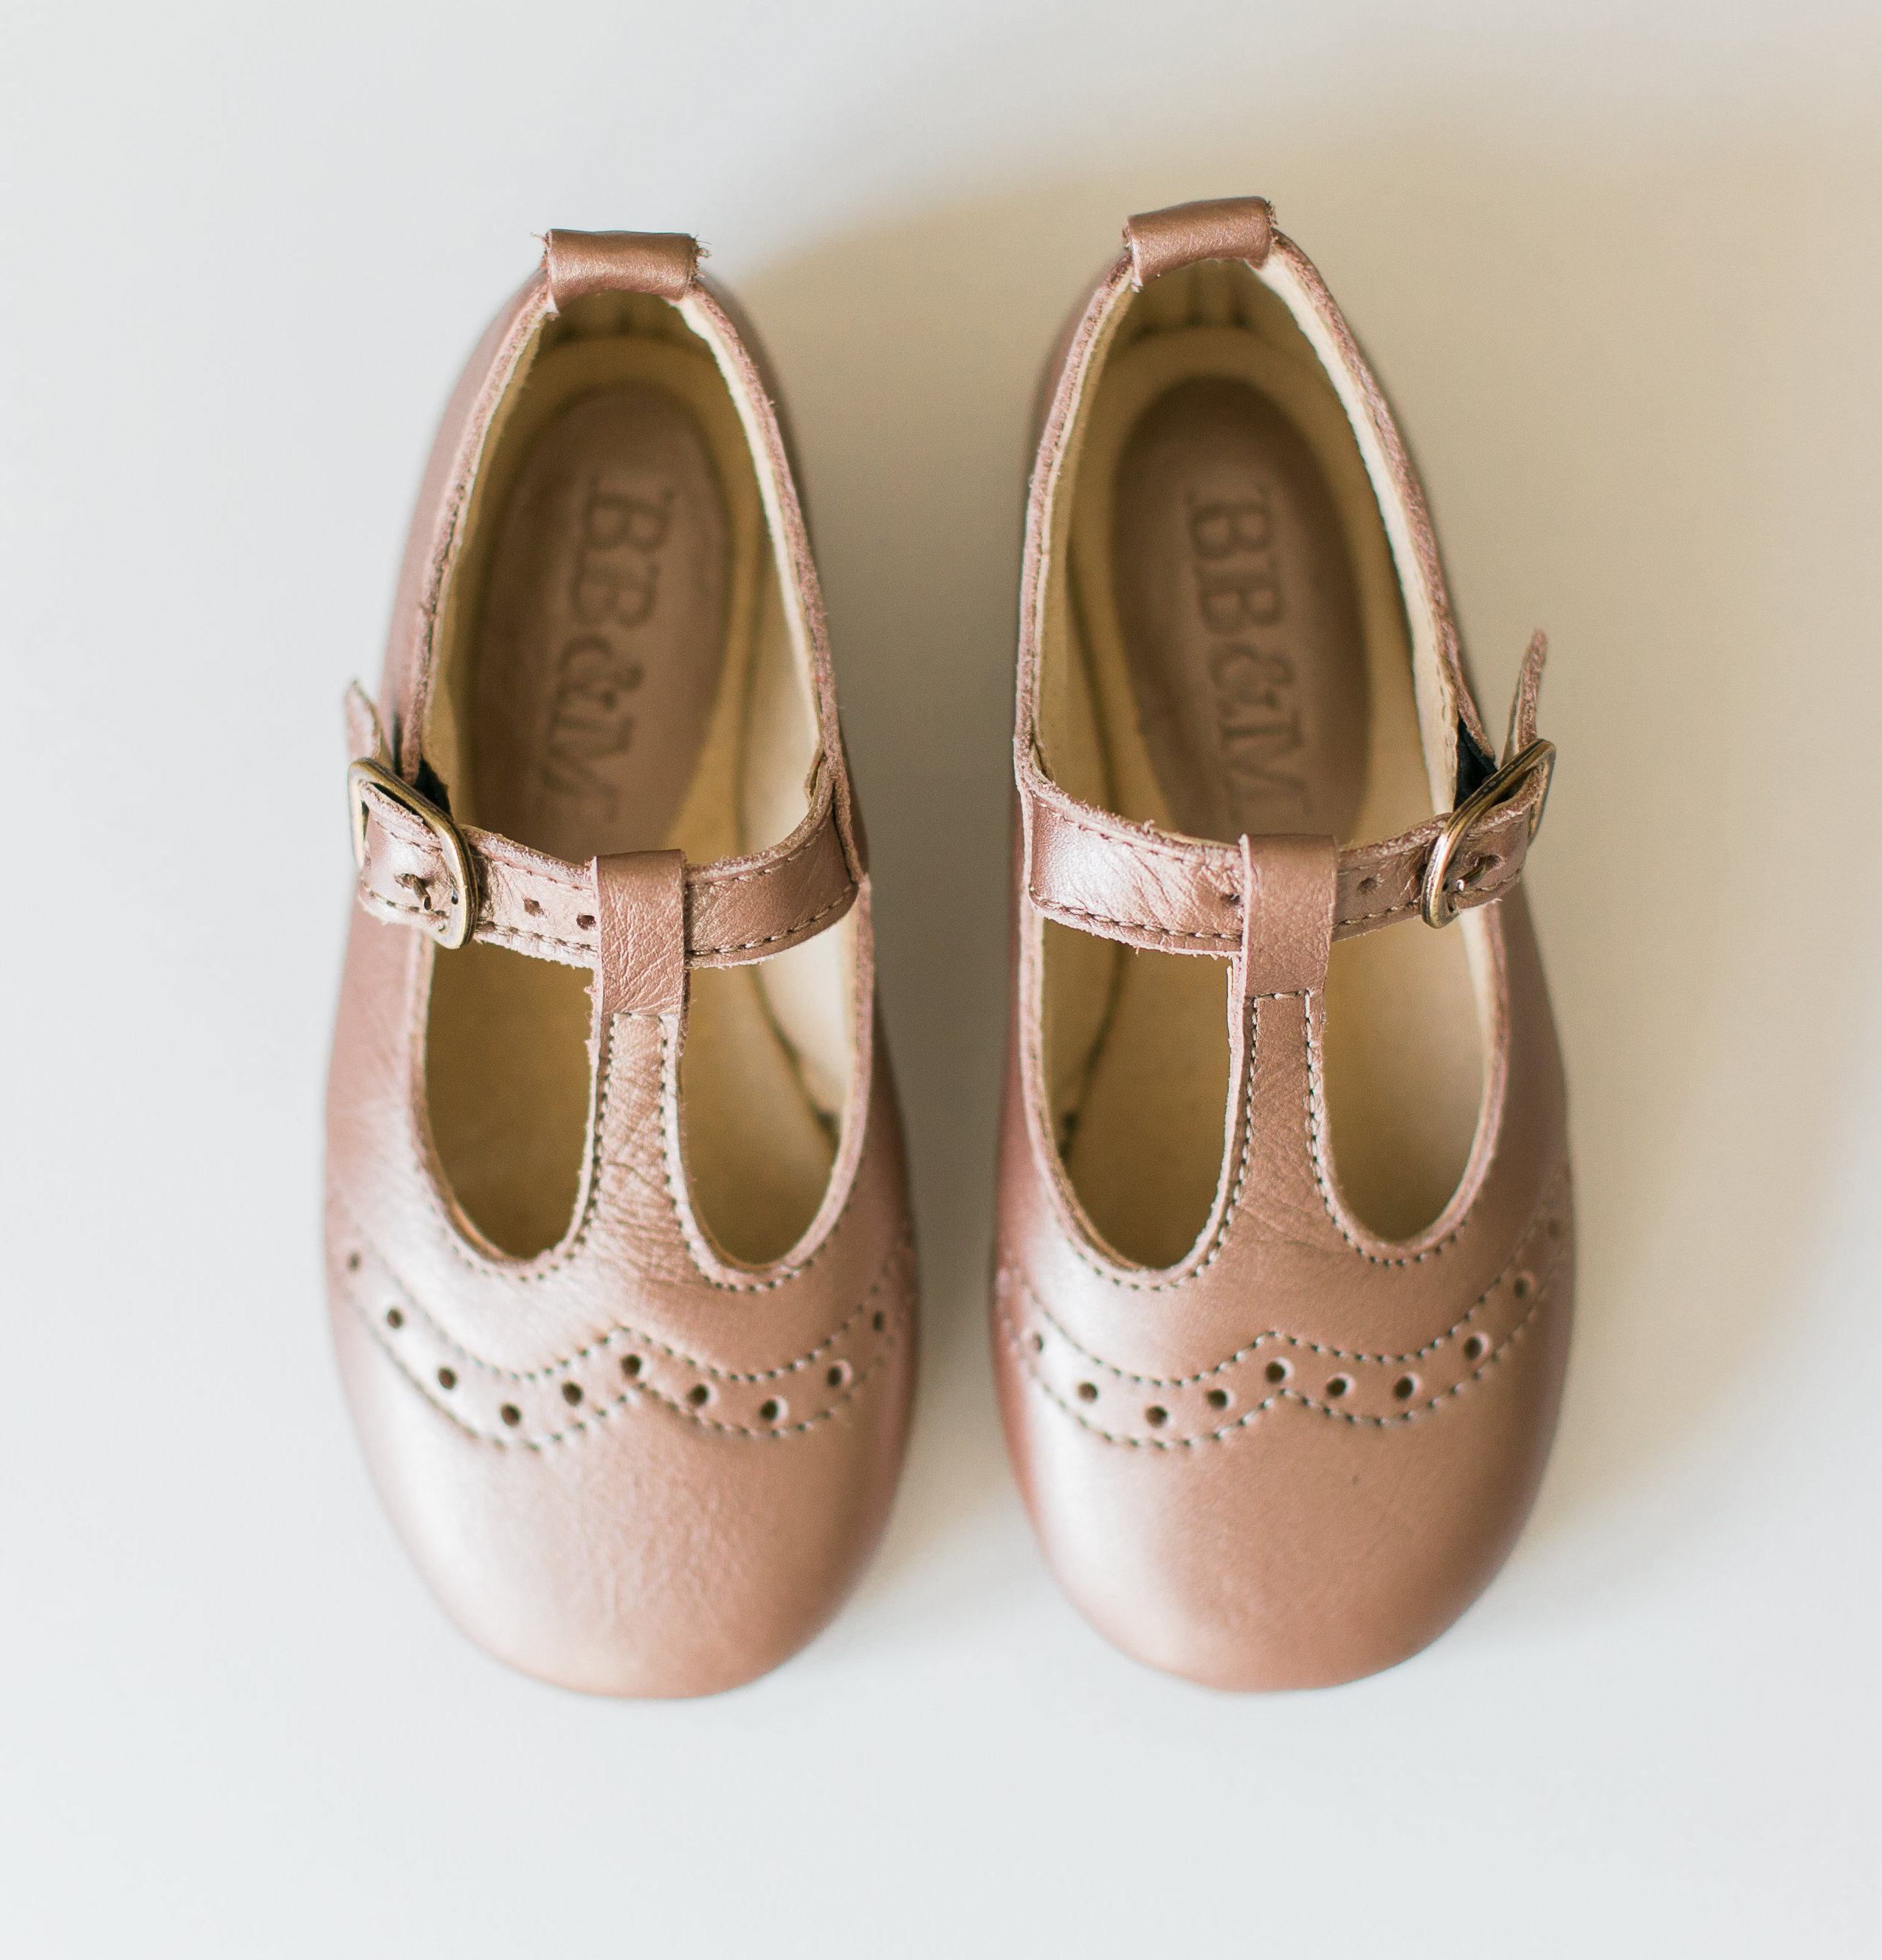 Girls Rose Gold T-bar Mary Janes with broguing - MJ3